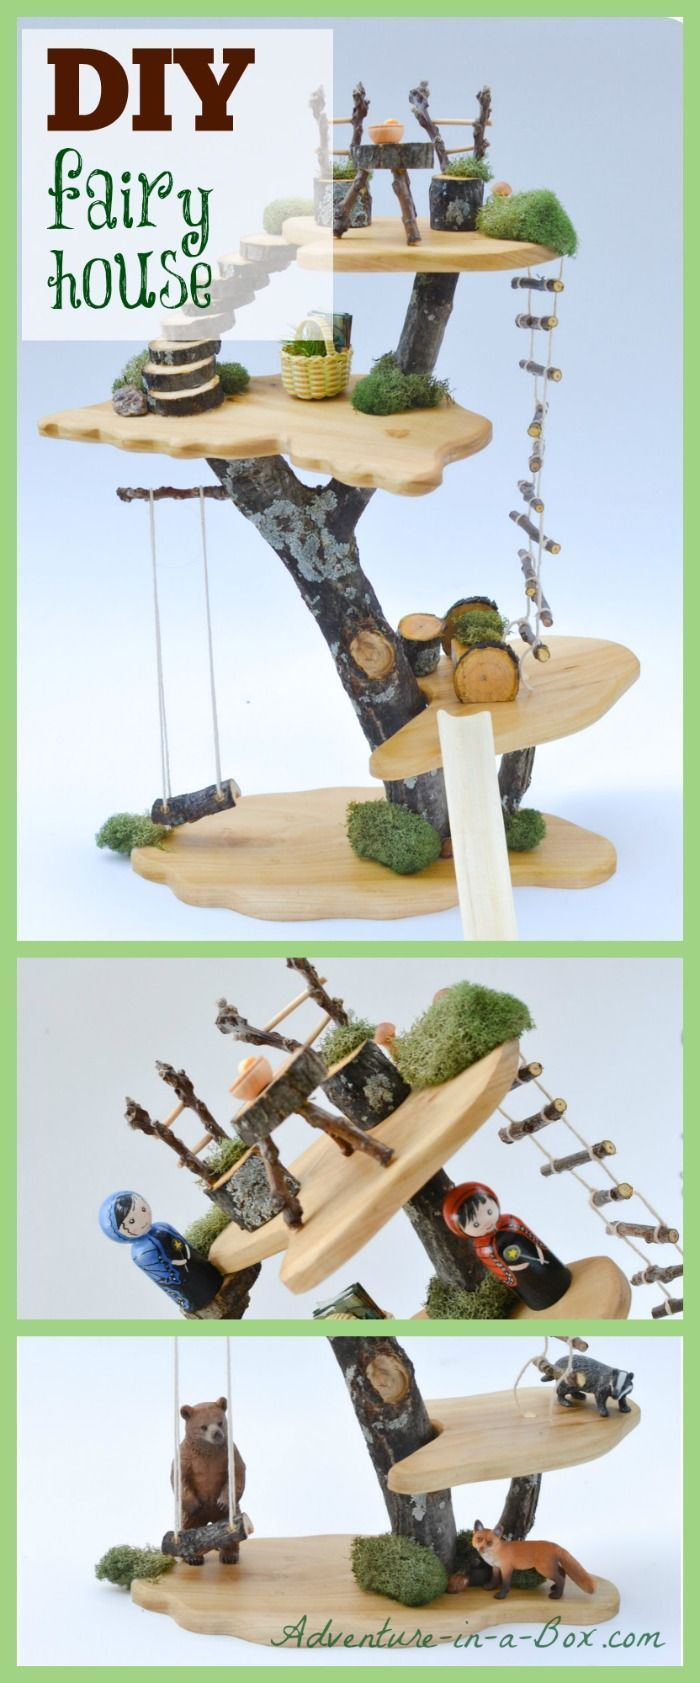 Diy project how to make a toy tree house pinterest for Raumgestaltung tool